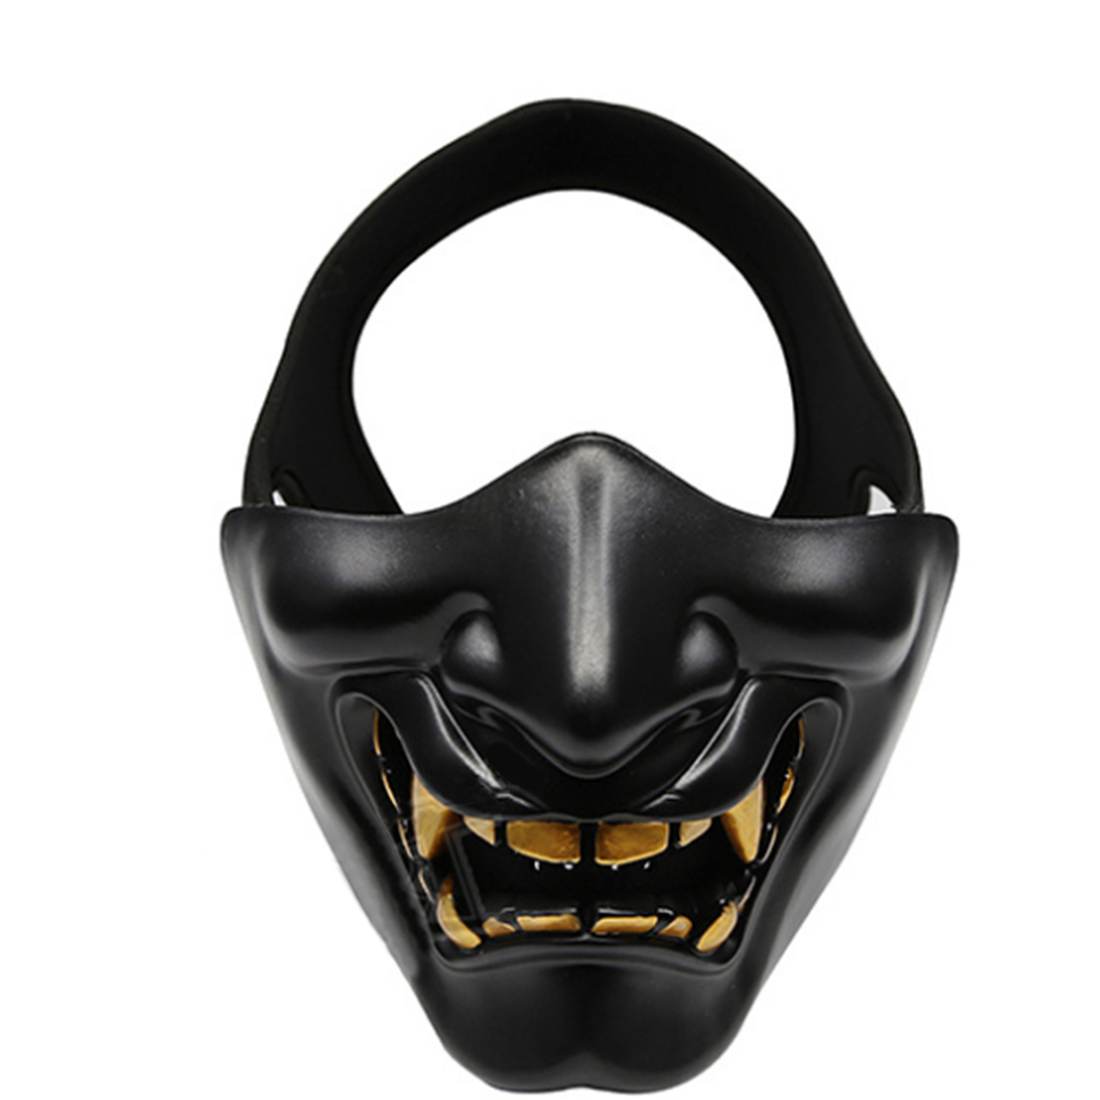 Airsoft Elastic Cool Half-face Tactical Mask Attractive Masquerade Party Face Cover Outdoor Shooting Paintball Protective Mask